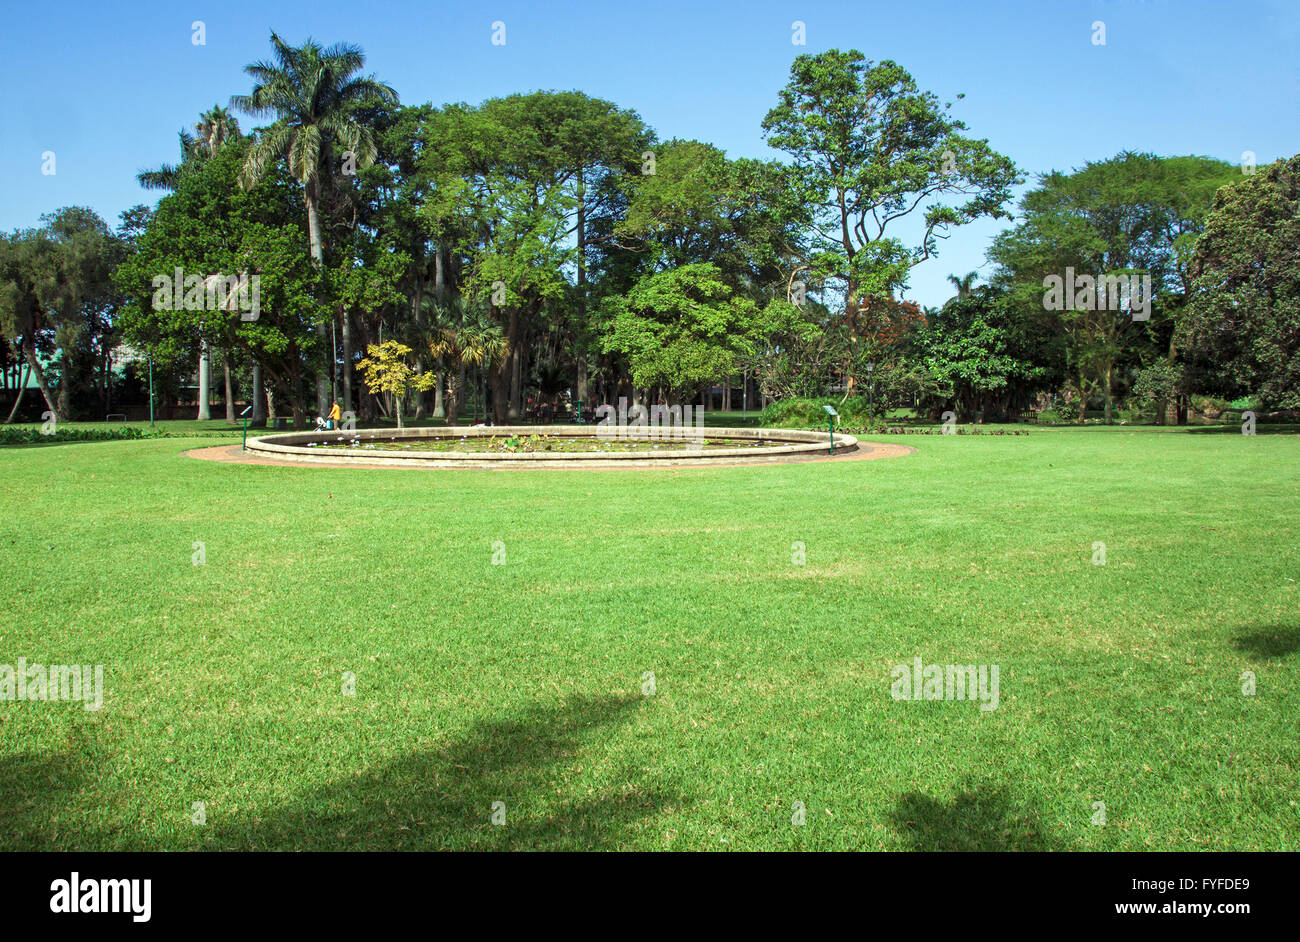 Green Lawn And Pond And Trees Against Tree Skyline In Botanical Garden  Landscape